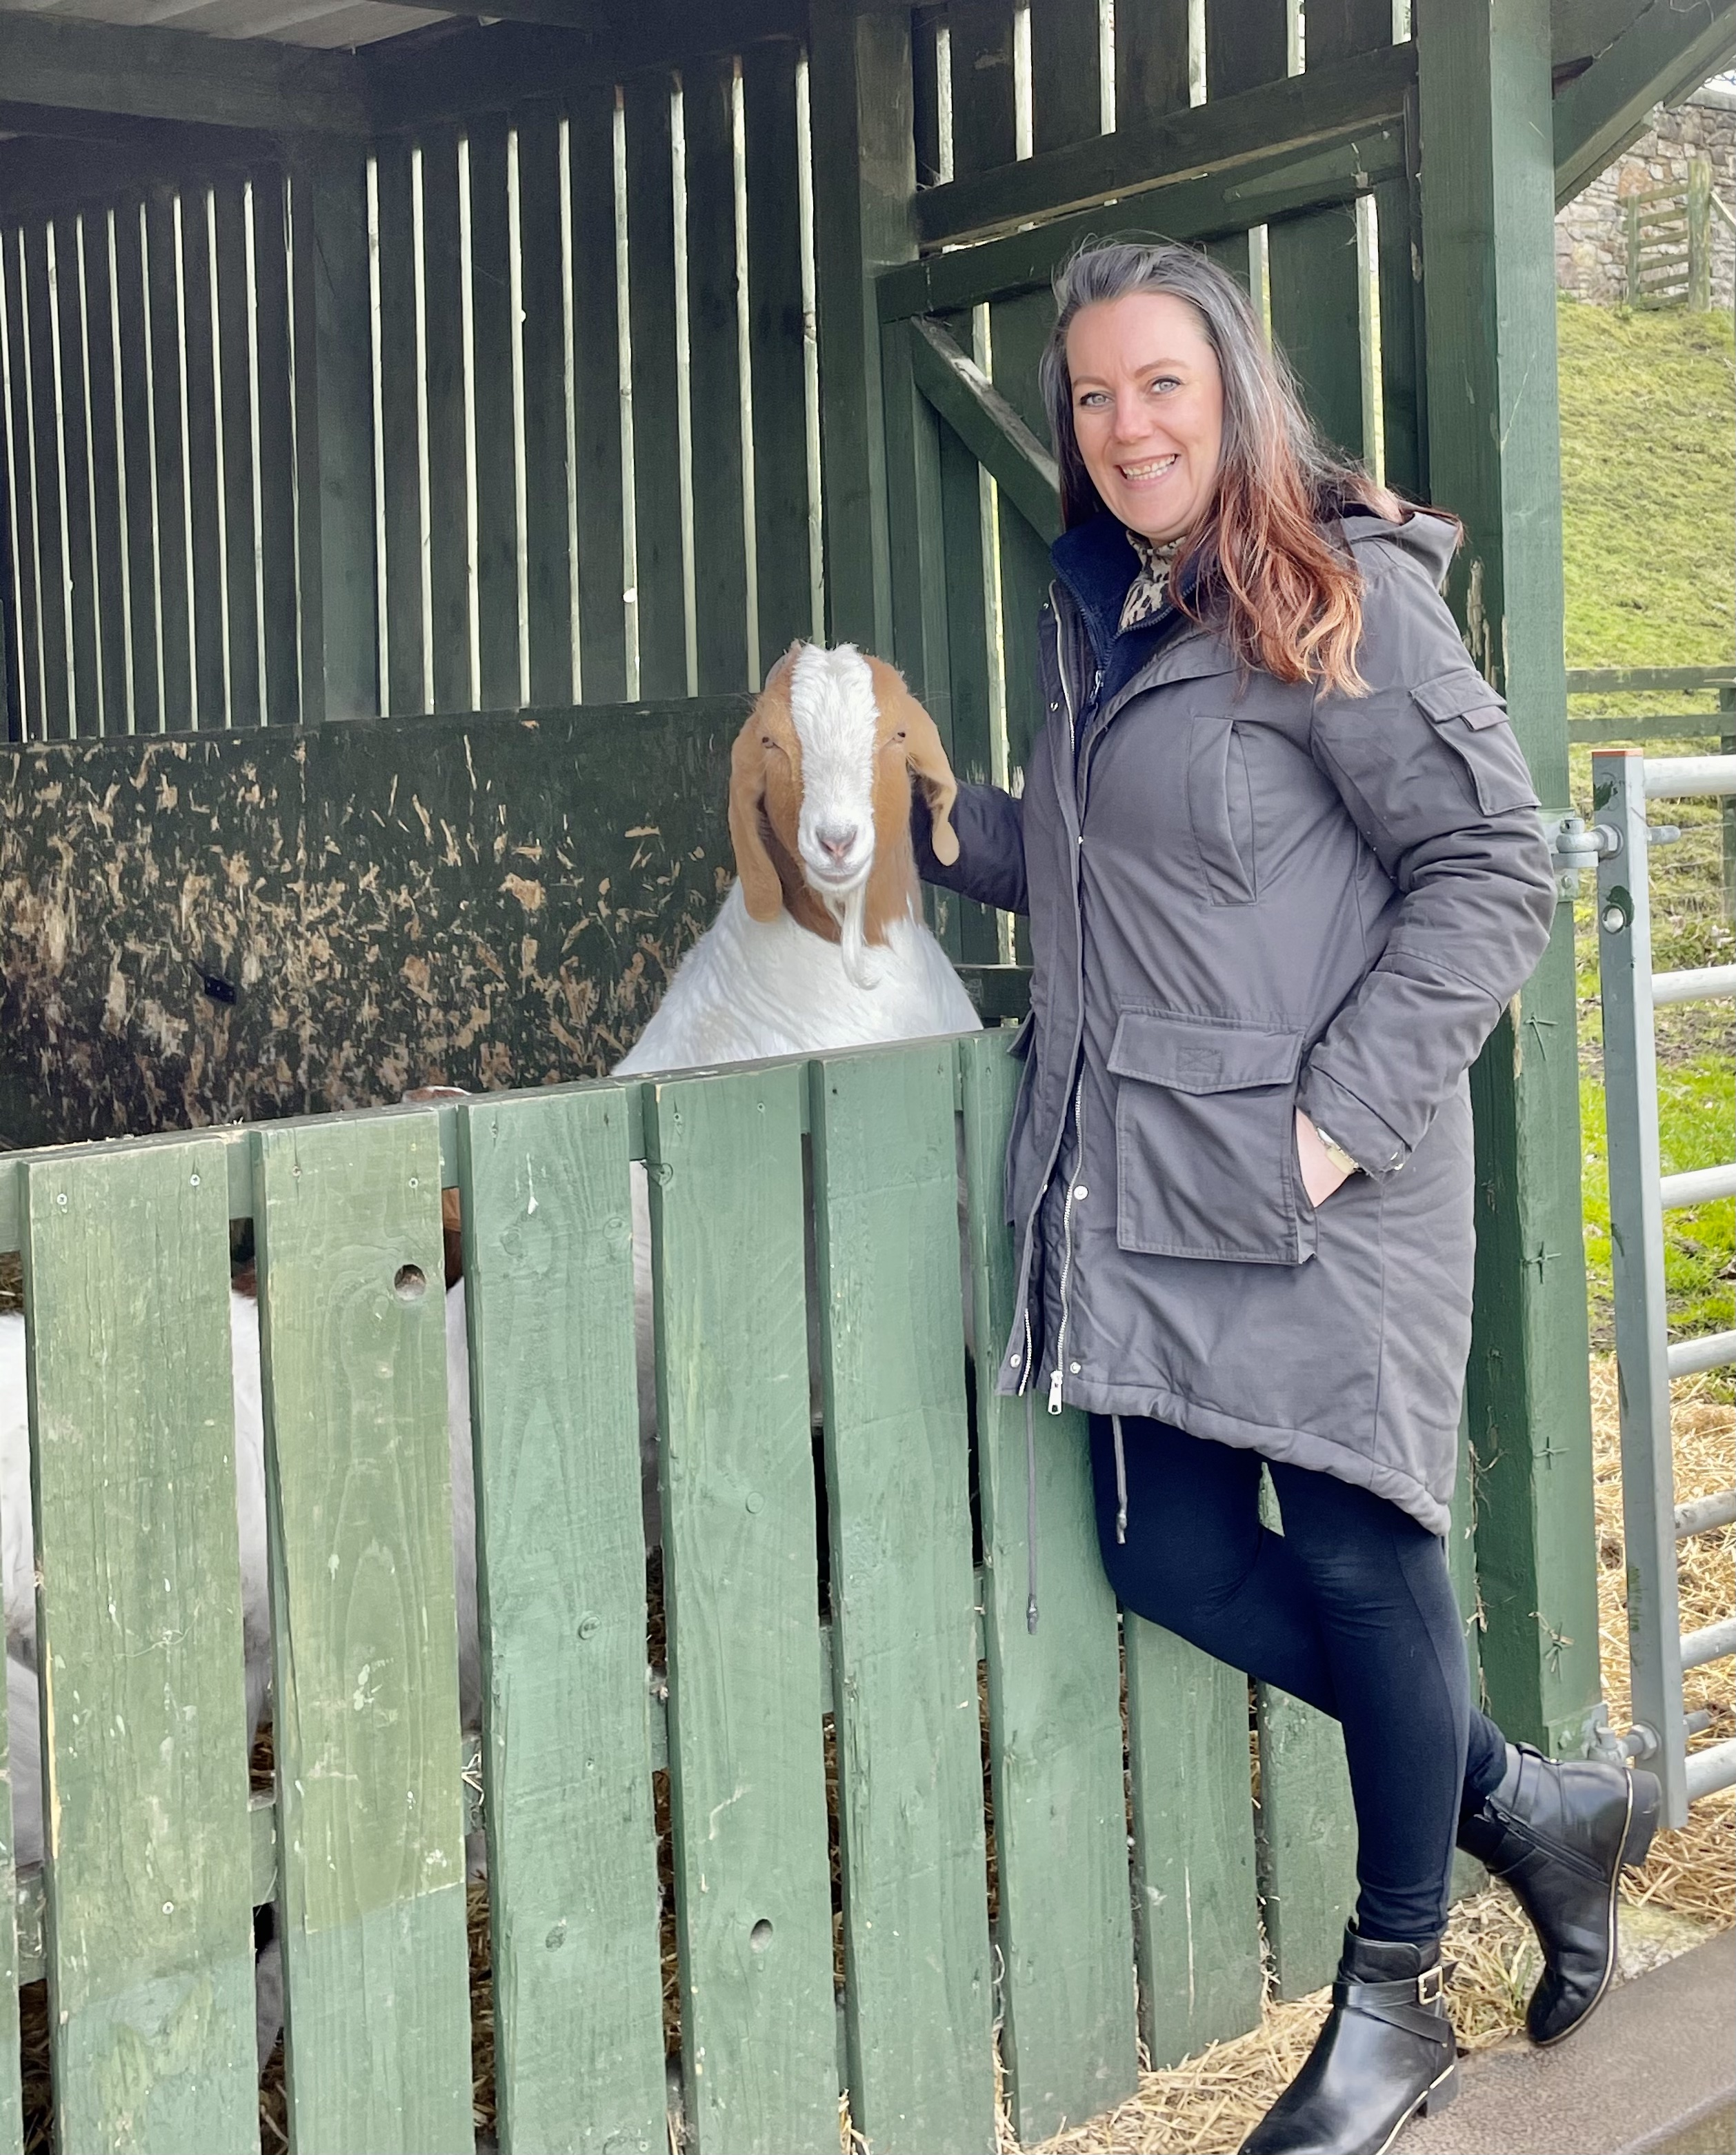 julie-o'donnell-with-a-goat